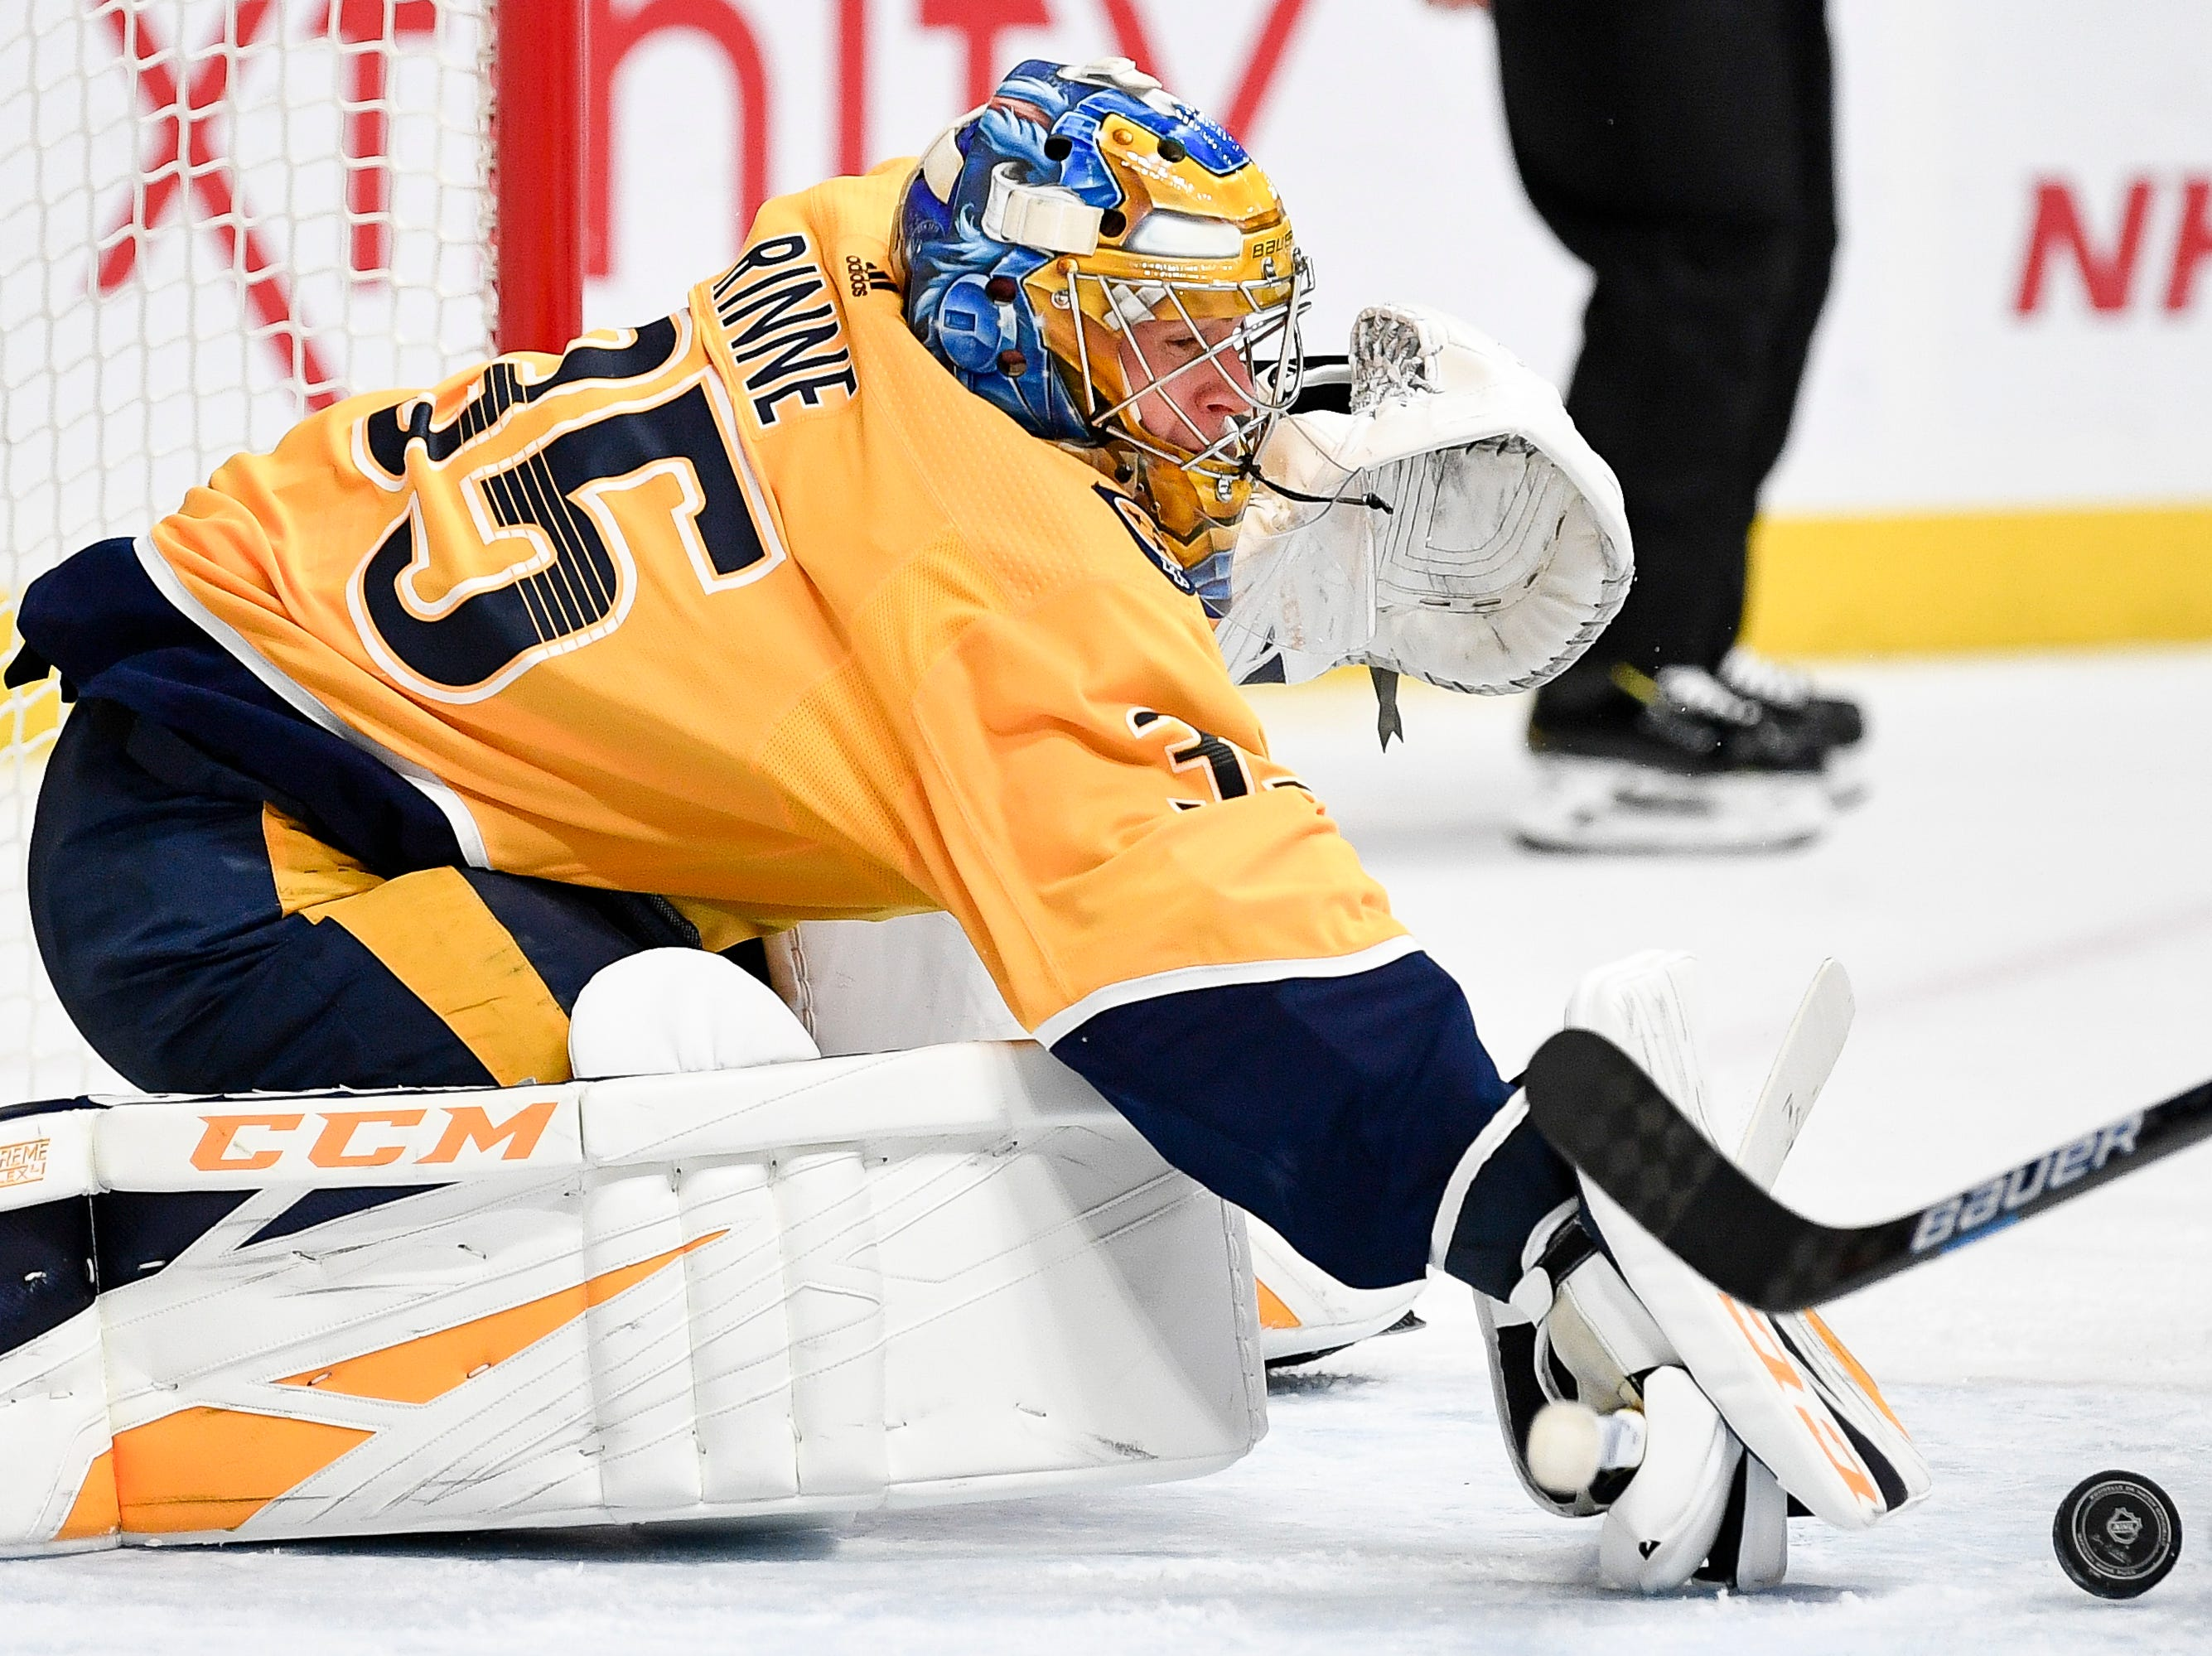 Nashville Predators goaltender Pekka Rinne (35) stops a Buffalo Sabres shot during the second period at Bridgestone Arena in Nashville, Tenn., Monday, Dec. 3, 2018.